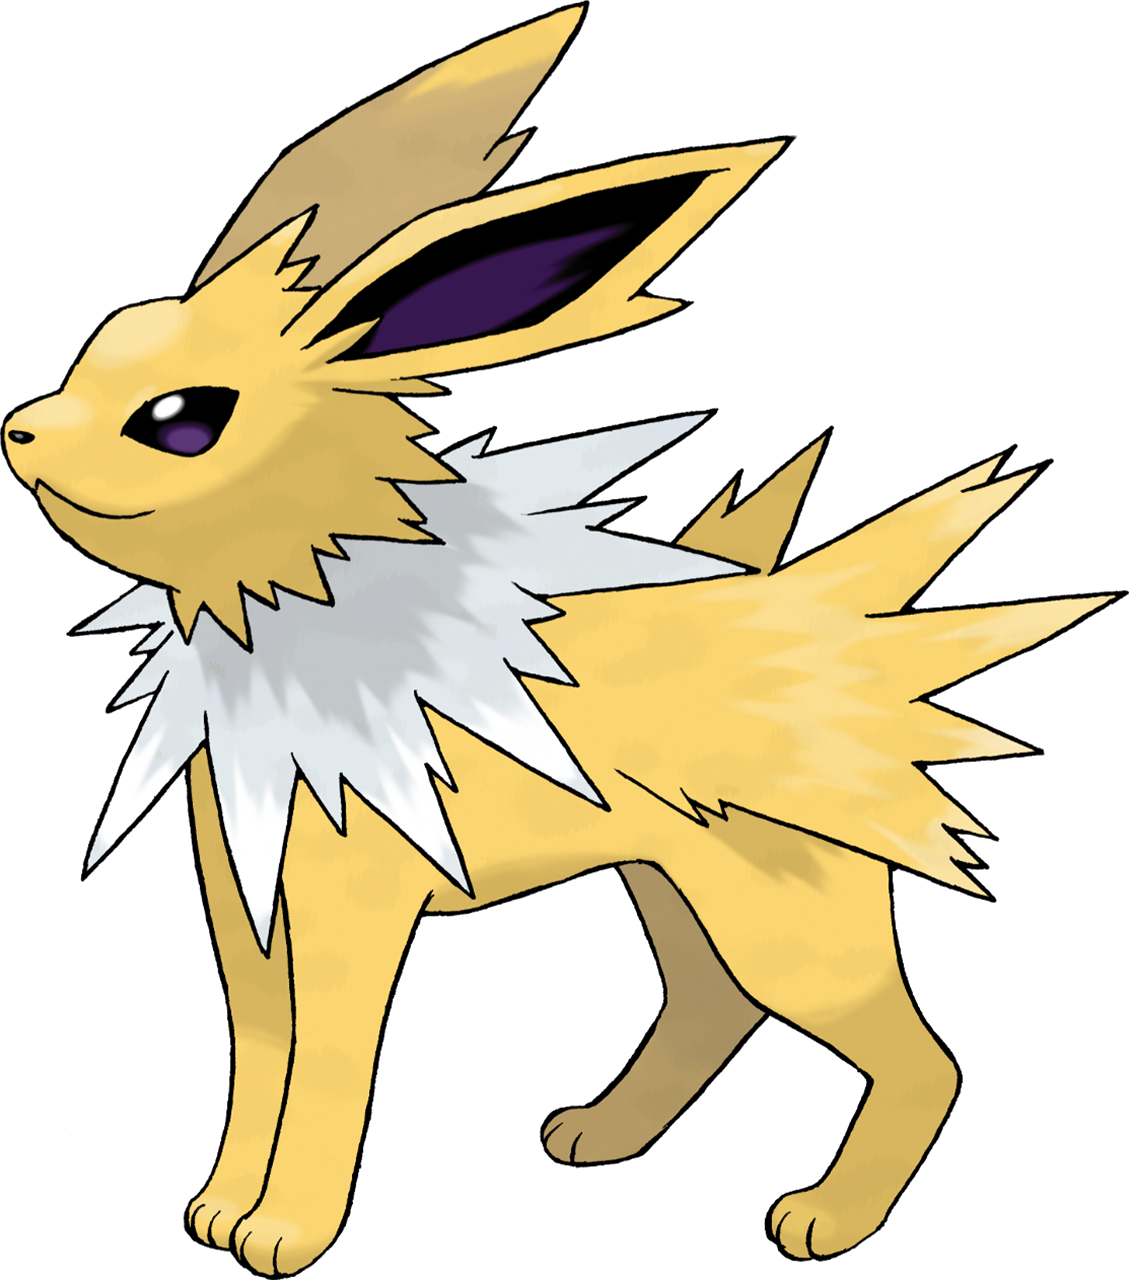 About your character: Sugimori_135